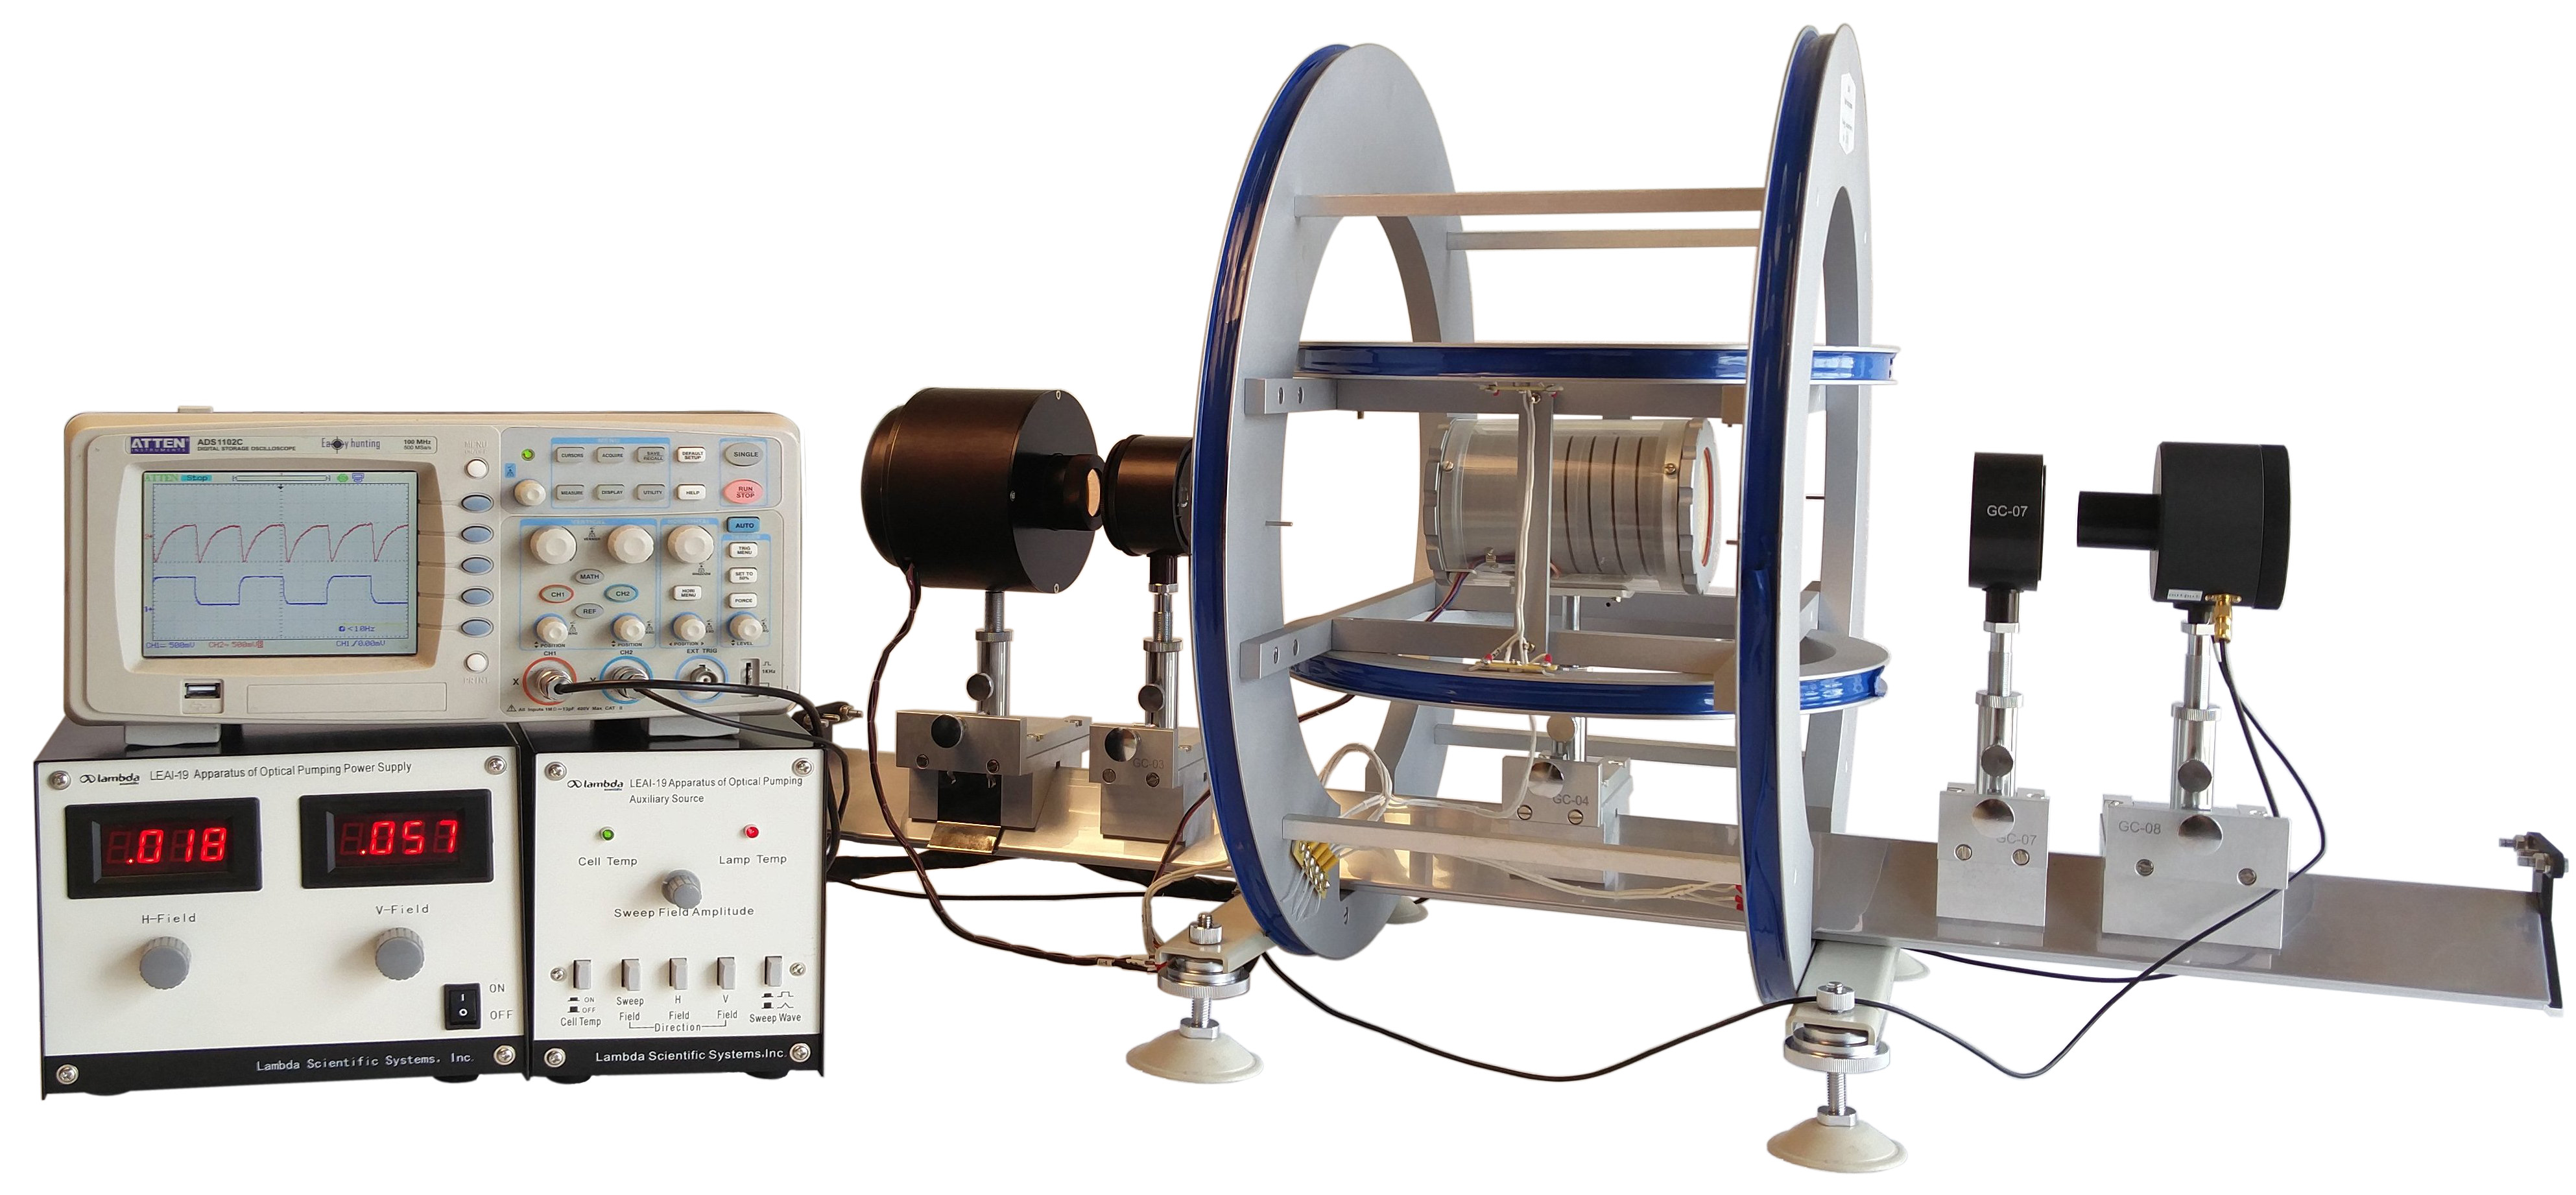 Physics lab equipment for NMR, Zeeman, Planck's constant, Franck-Hertz, Millikan oil drop, e/m, electron diffraction, ultrasound & microwave.